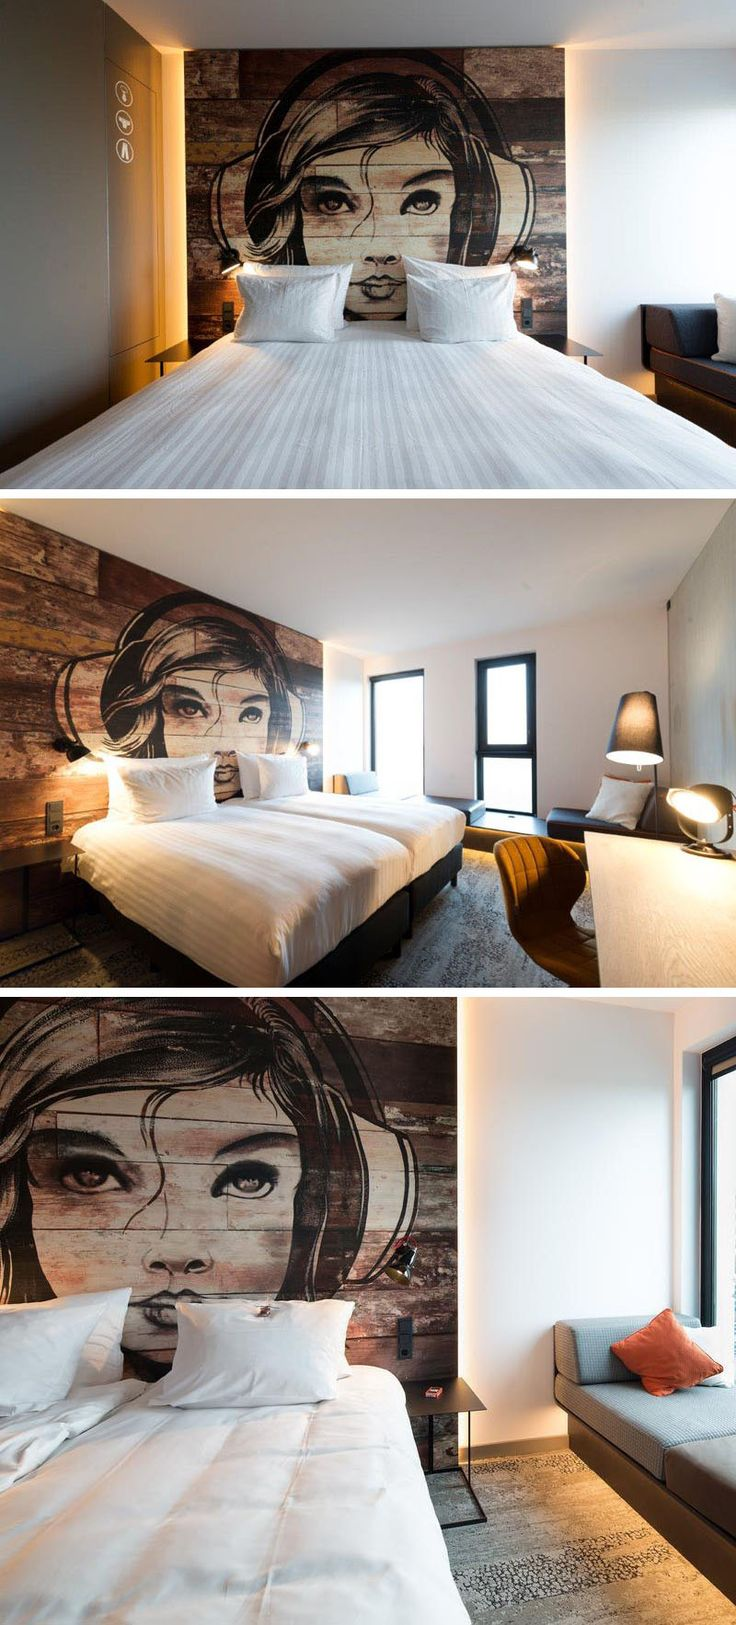 Best 25 mural painting ideas on pinterest mural art for Mural headboard